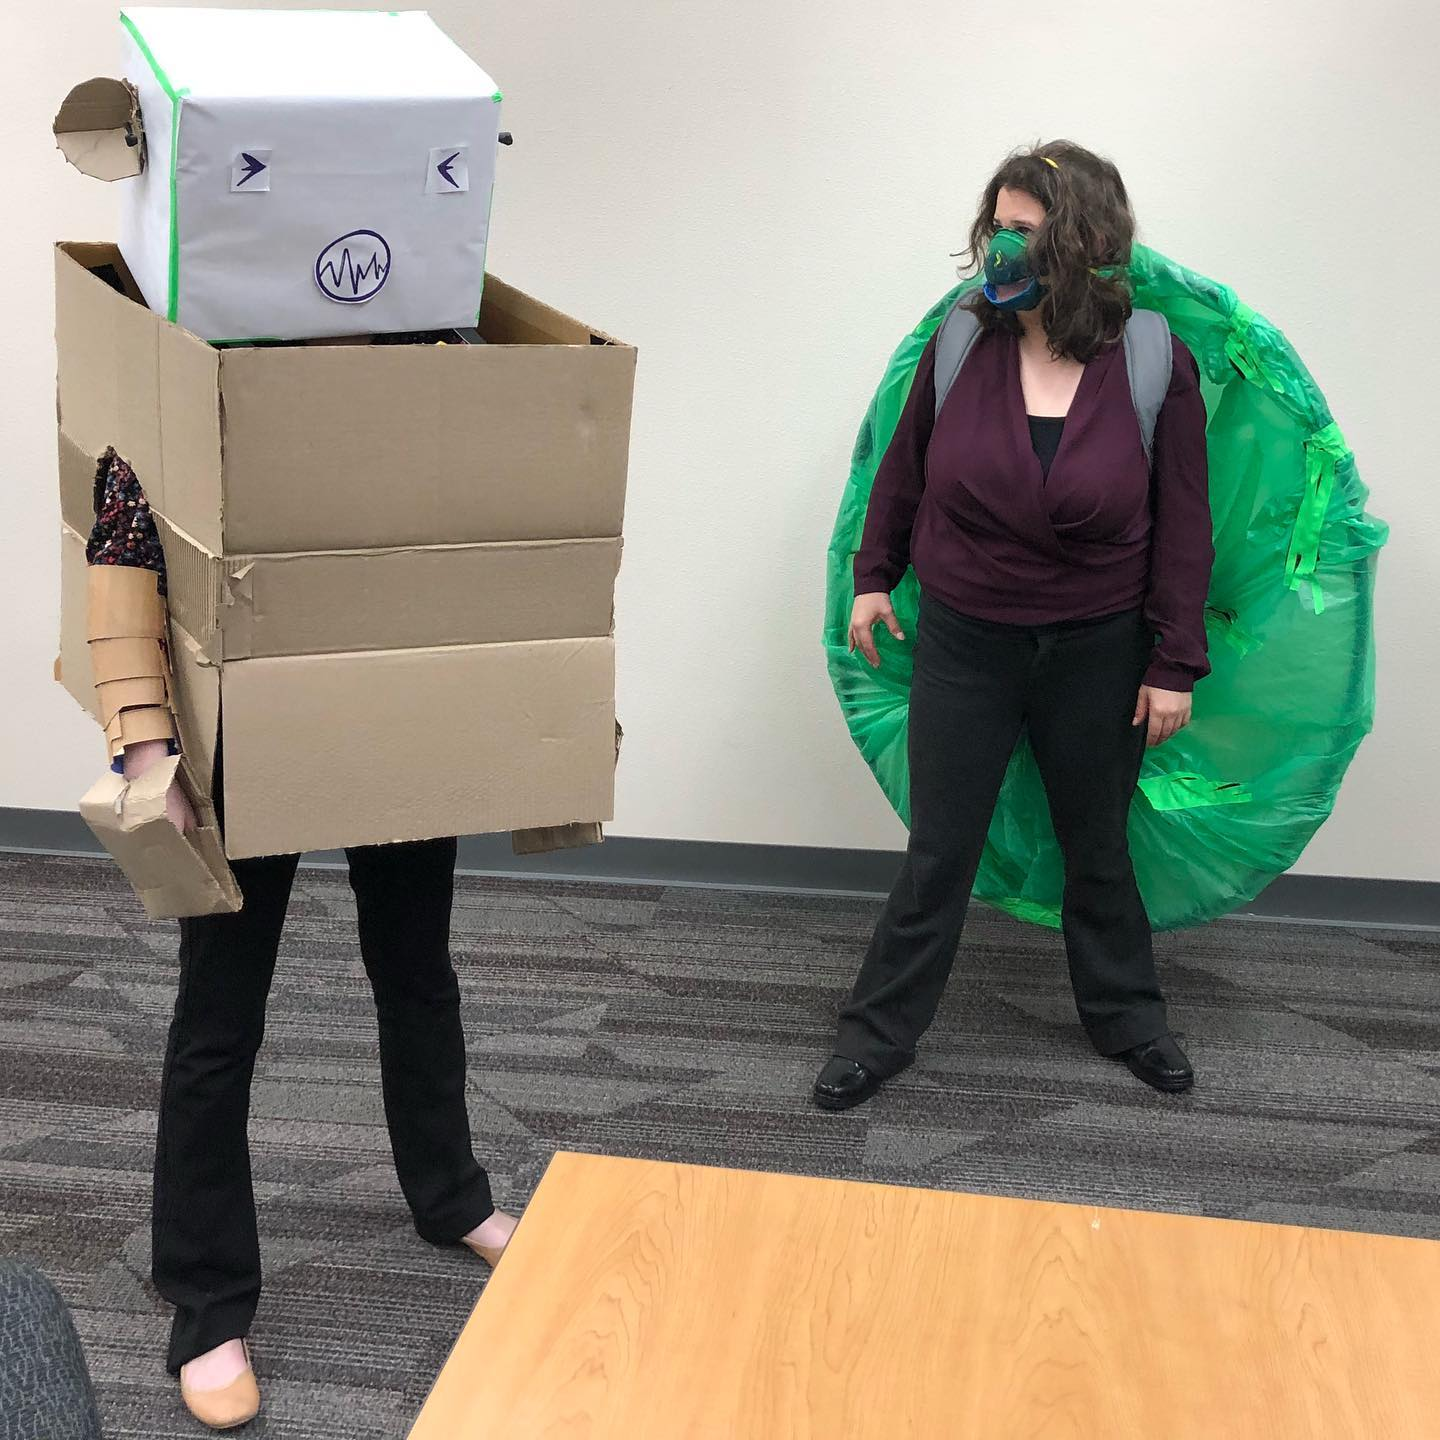 Actors standing in handmade giant cardboard box robot and giant turtle costumes.